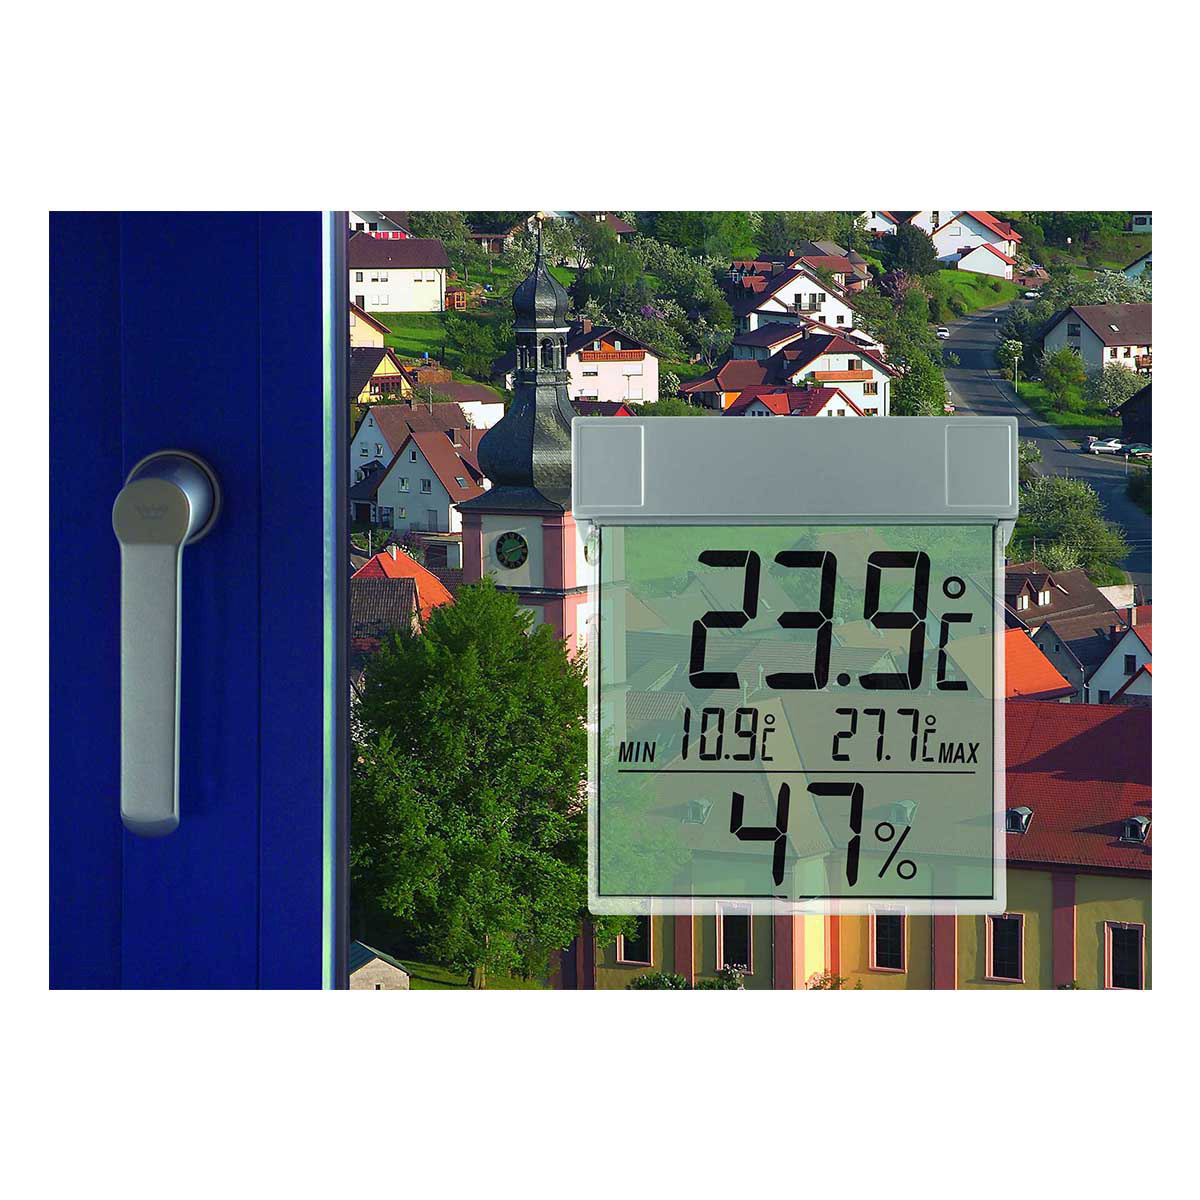 30-5020-digitales-fenster-thermo-hygrometer-vision-anwendung-1200x1200px.jpg